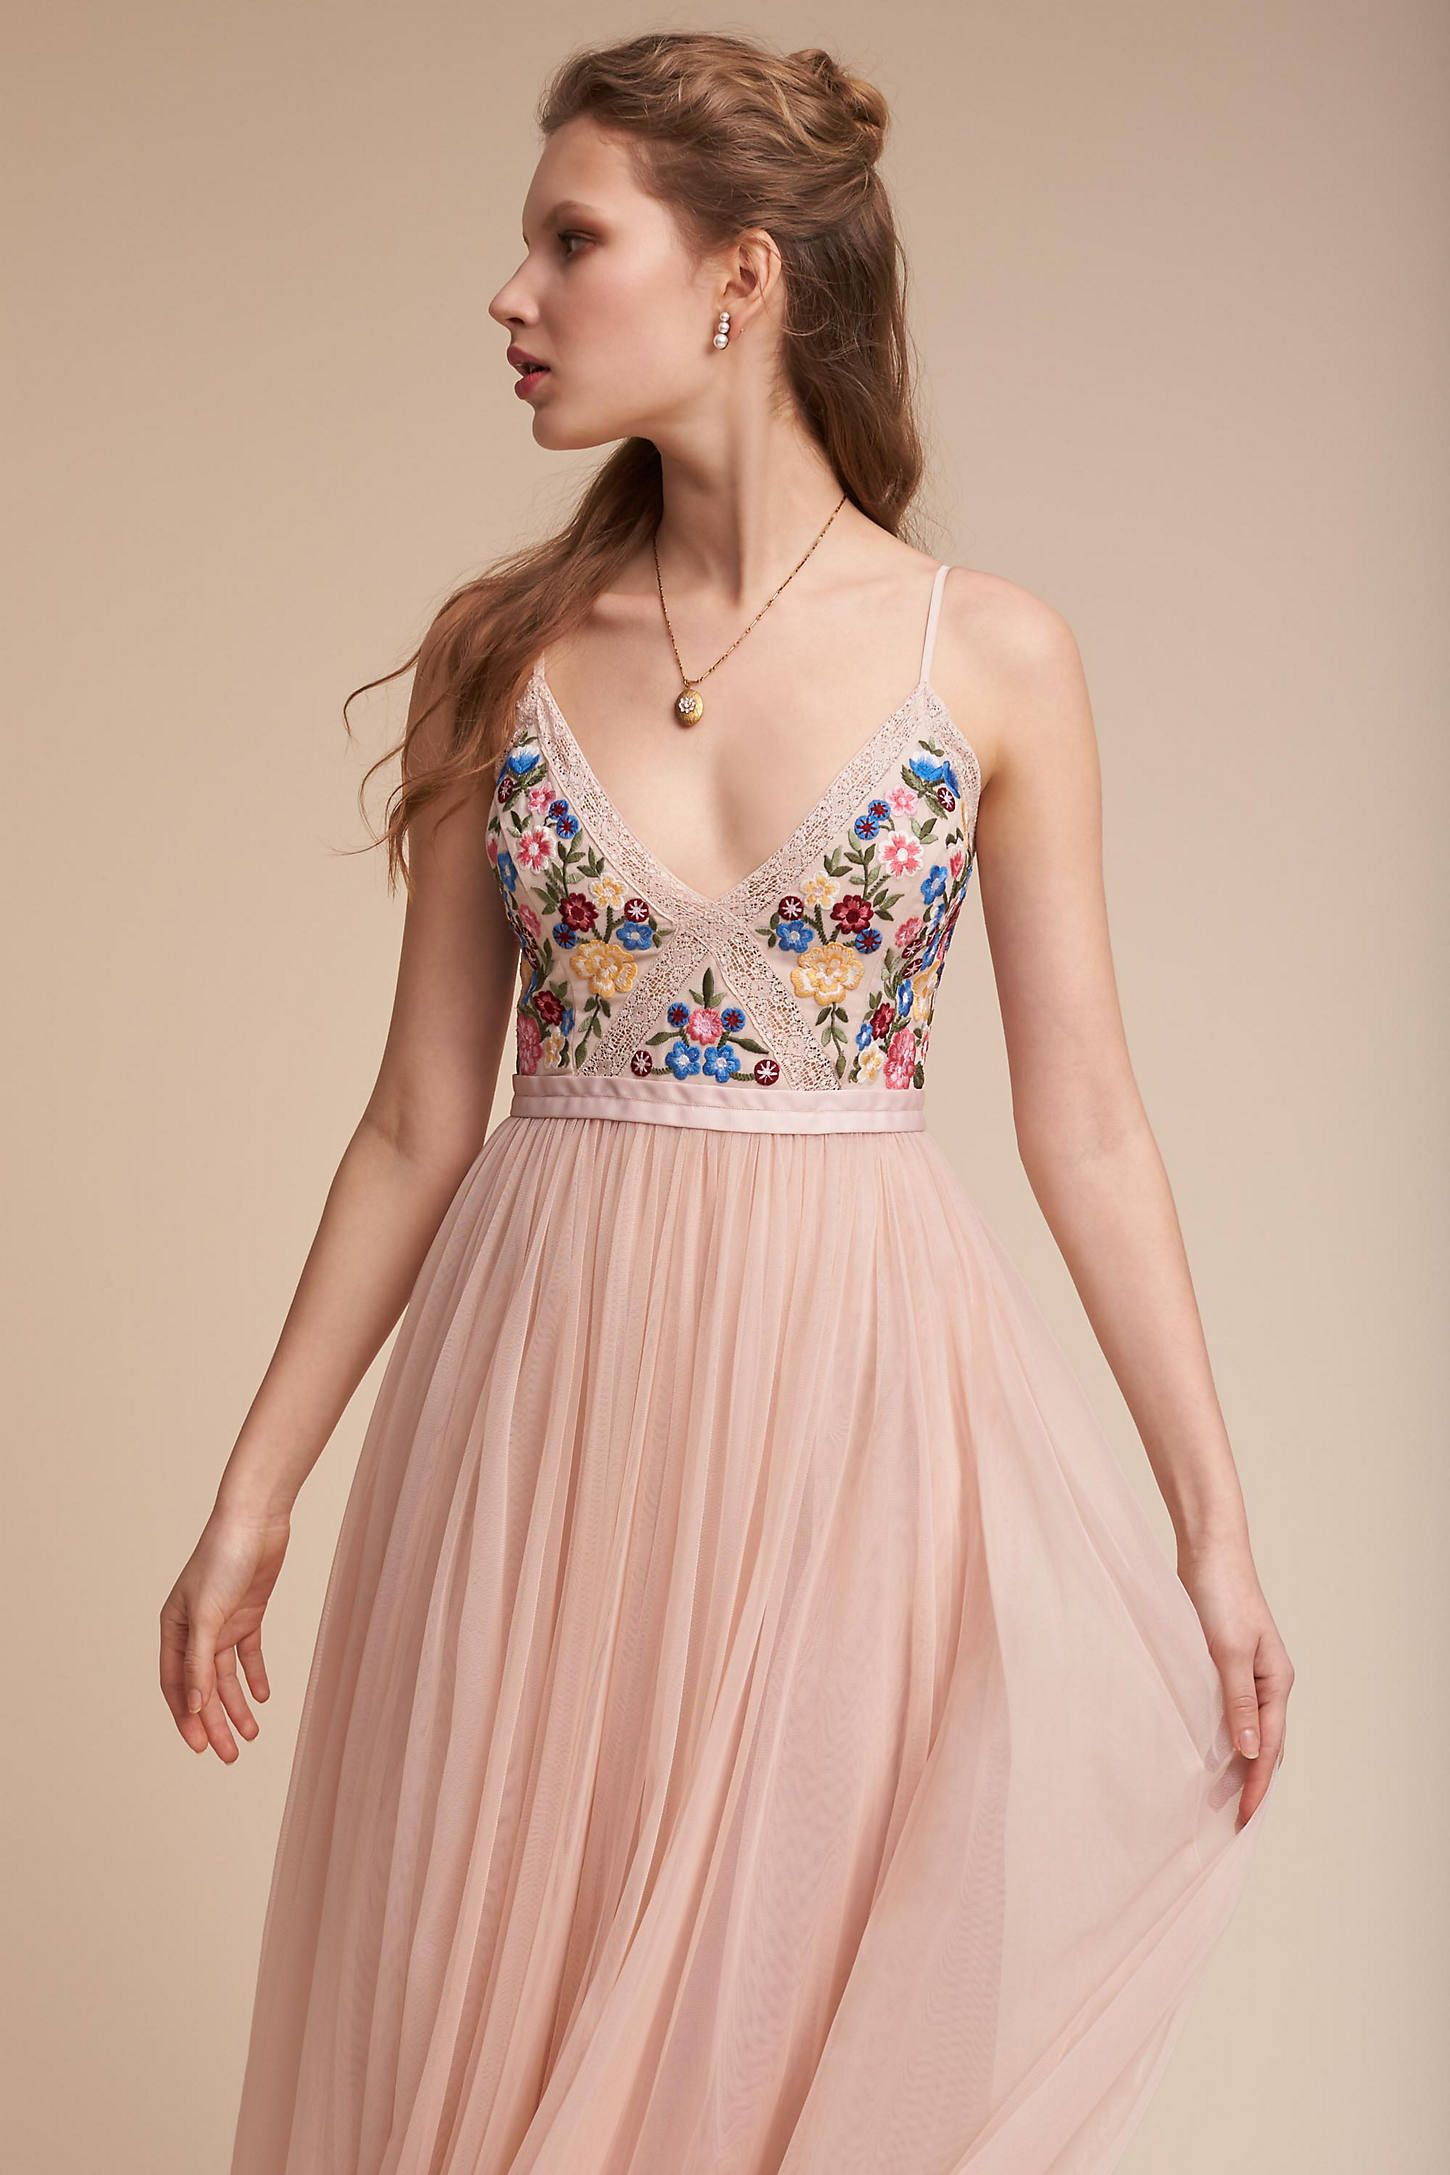 Floral and tulle wedding, bridesmaid, or wedding guest dress ...